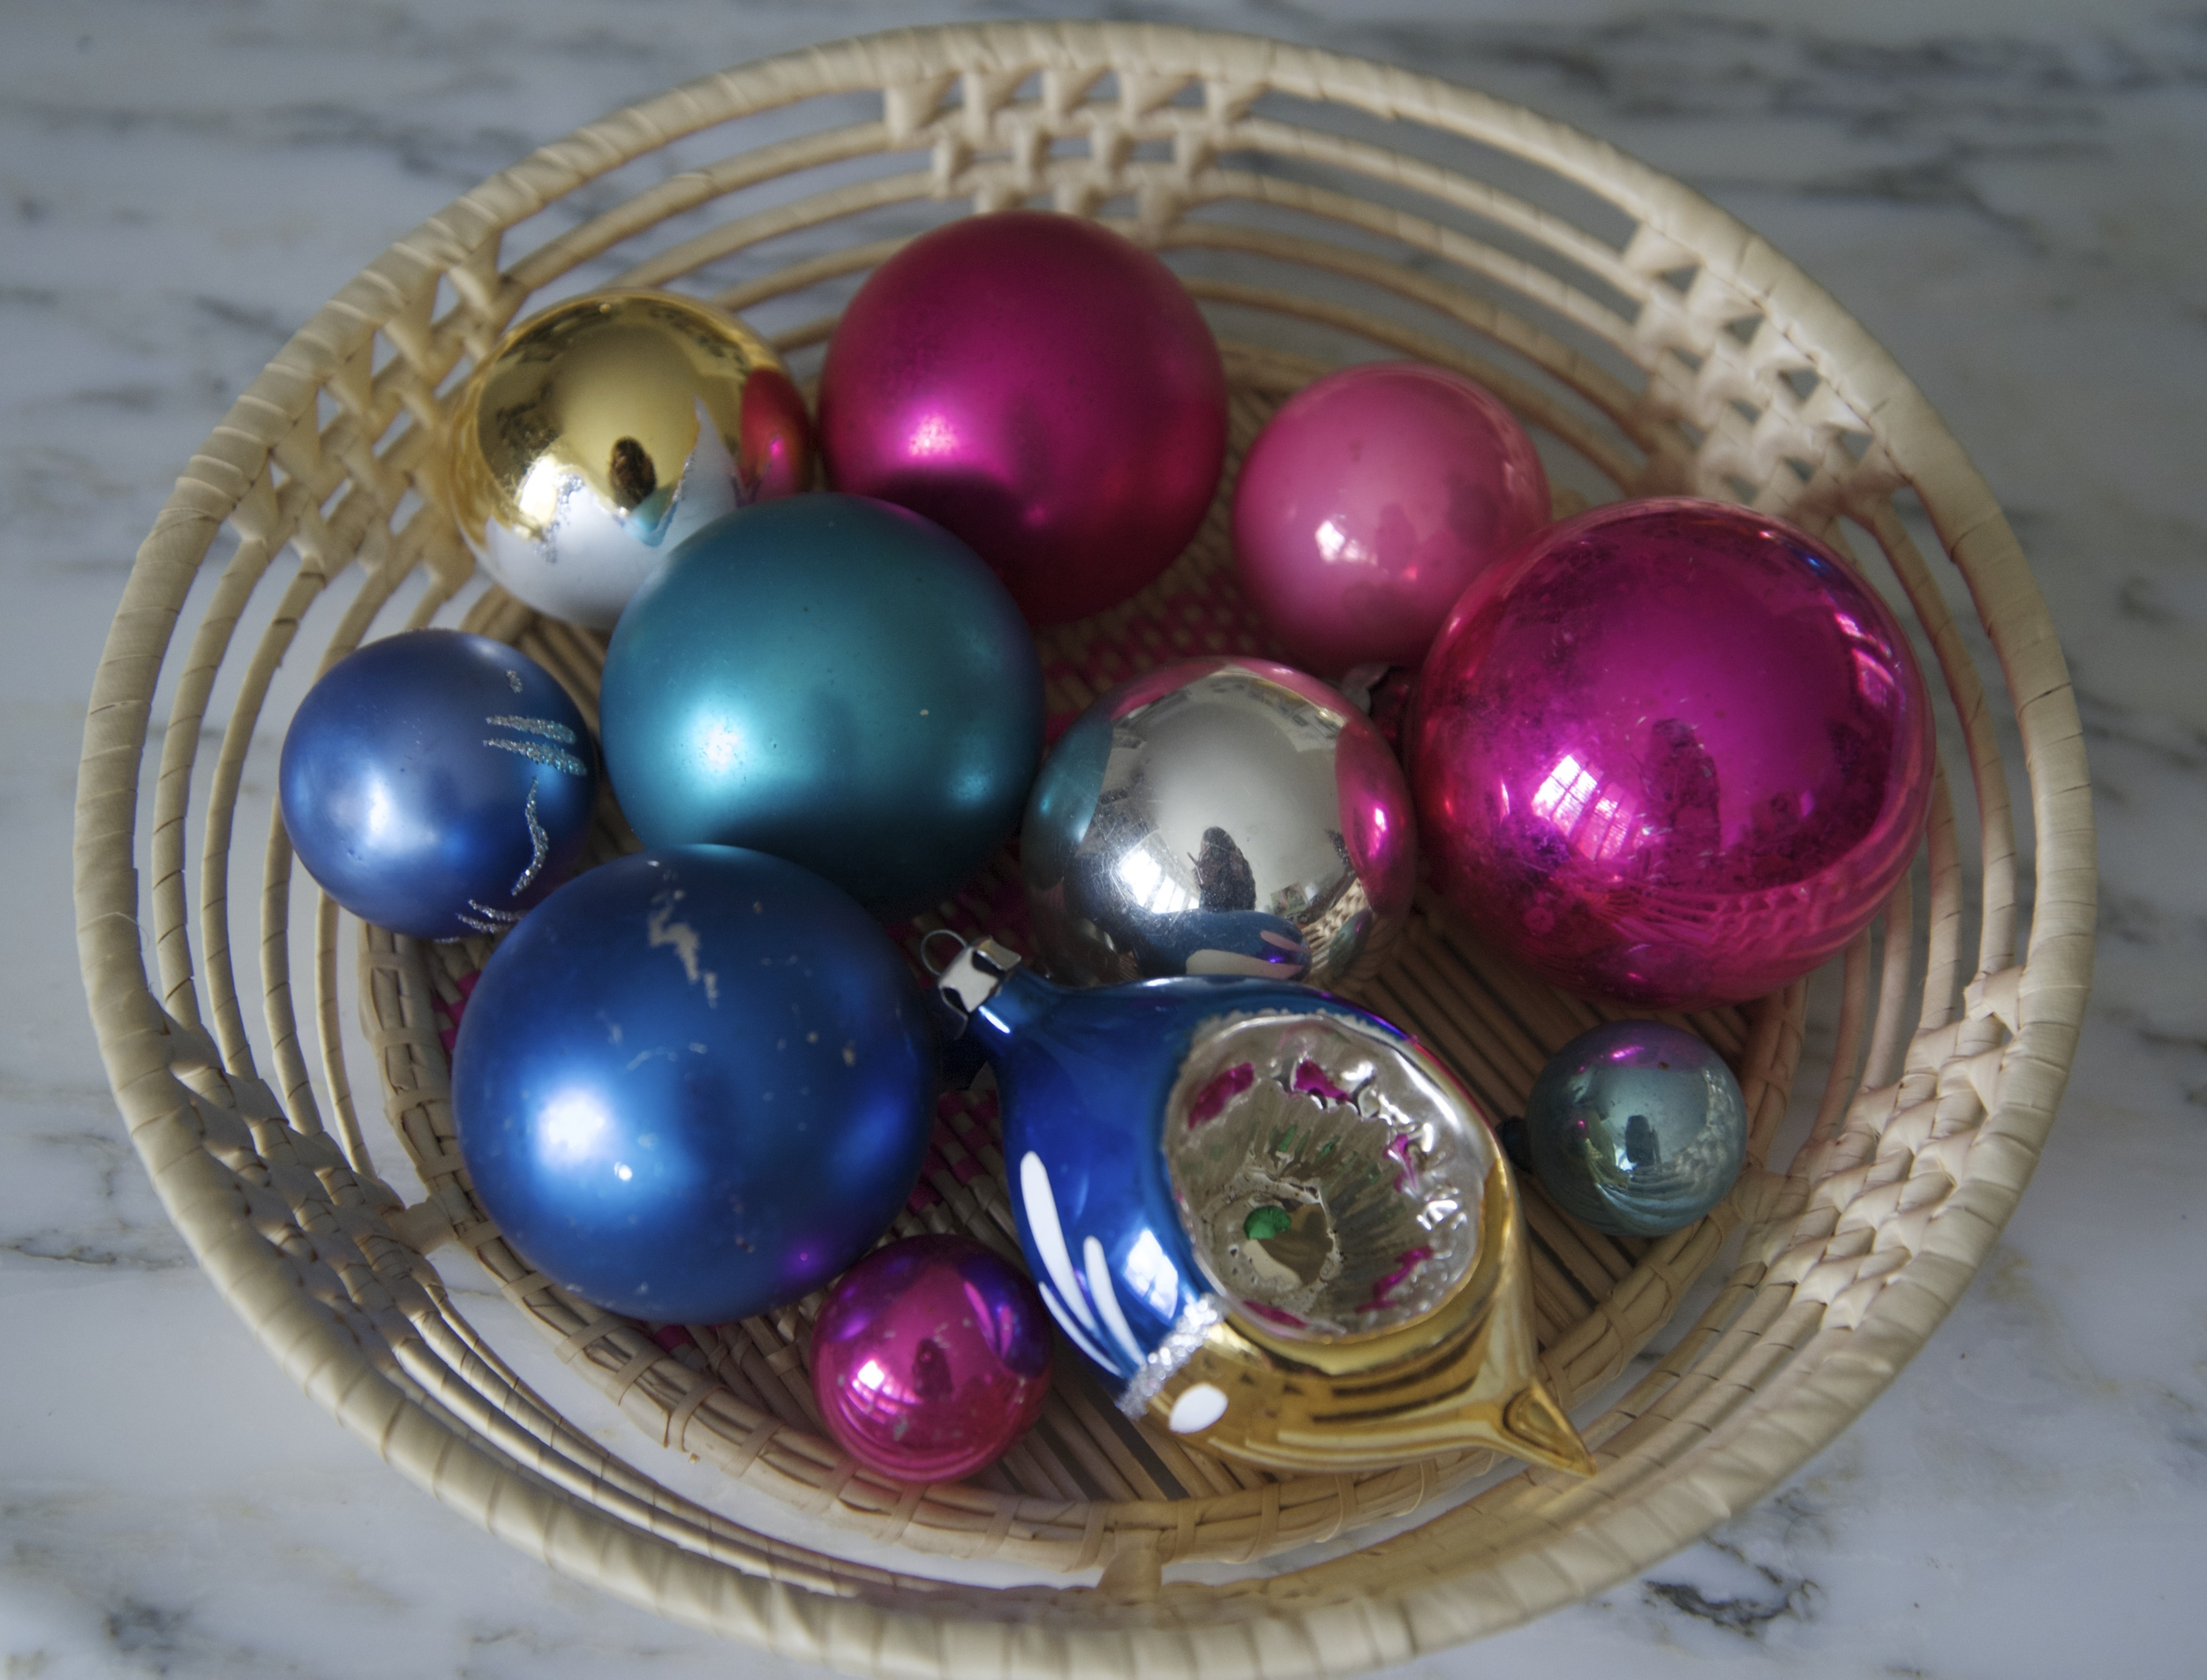 Lots of our ornaments are passed down from our family.